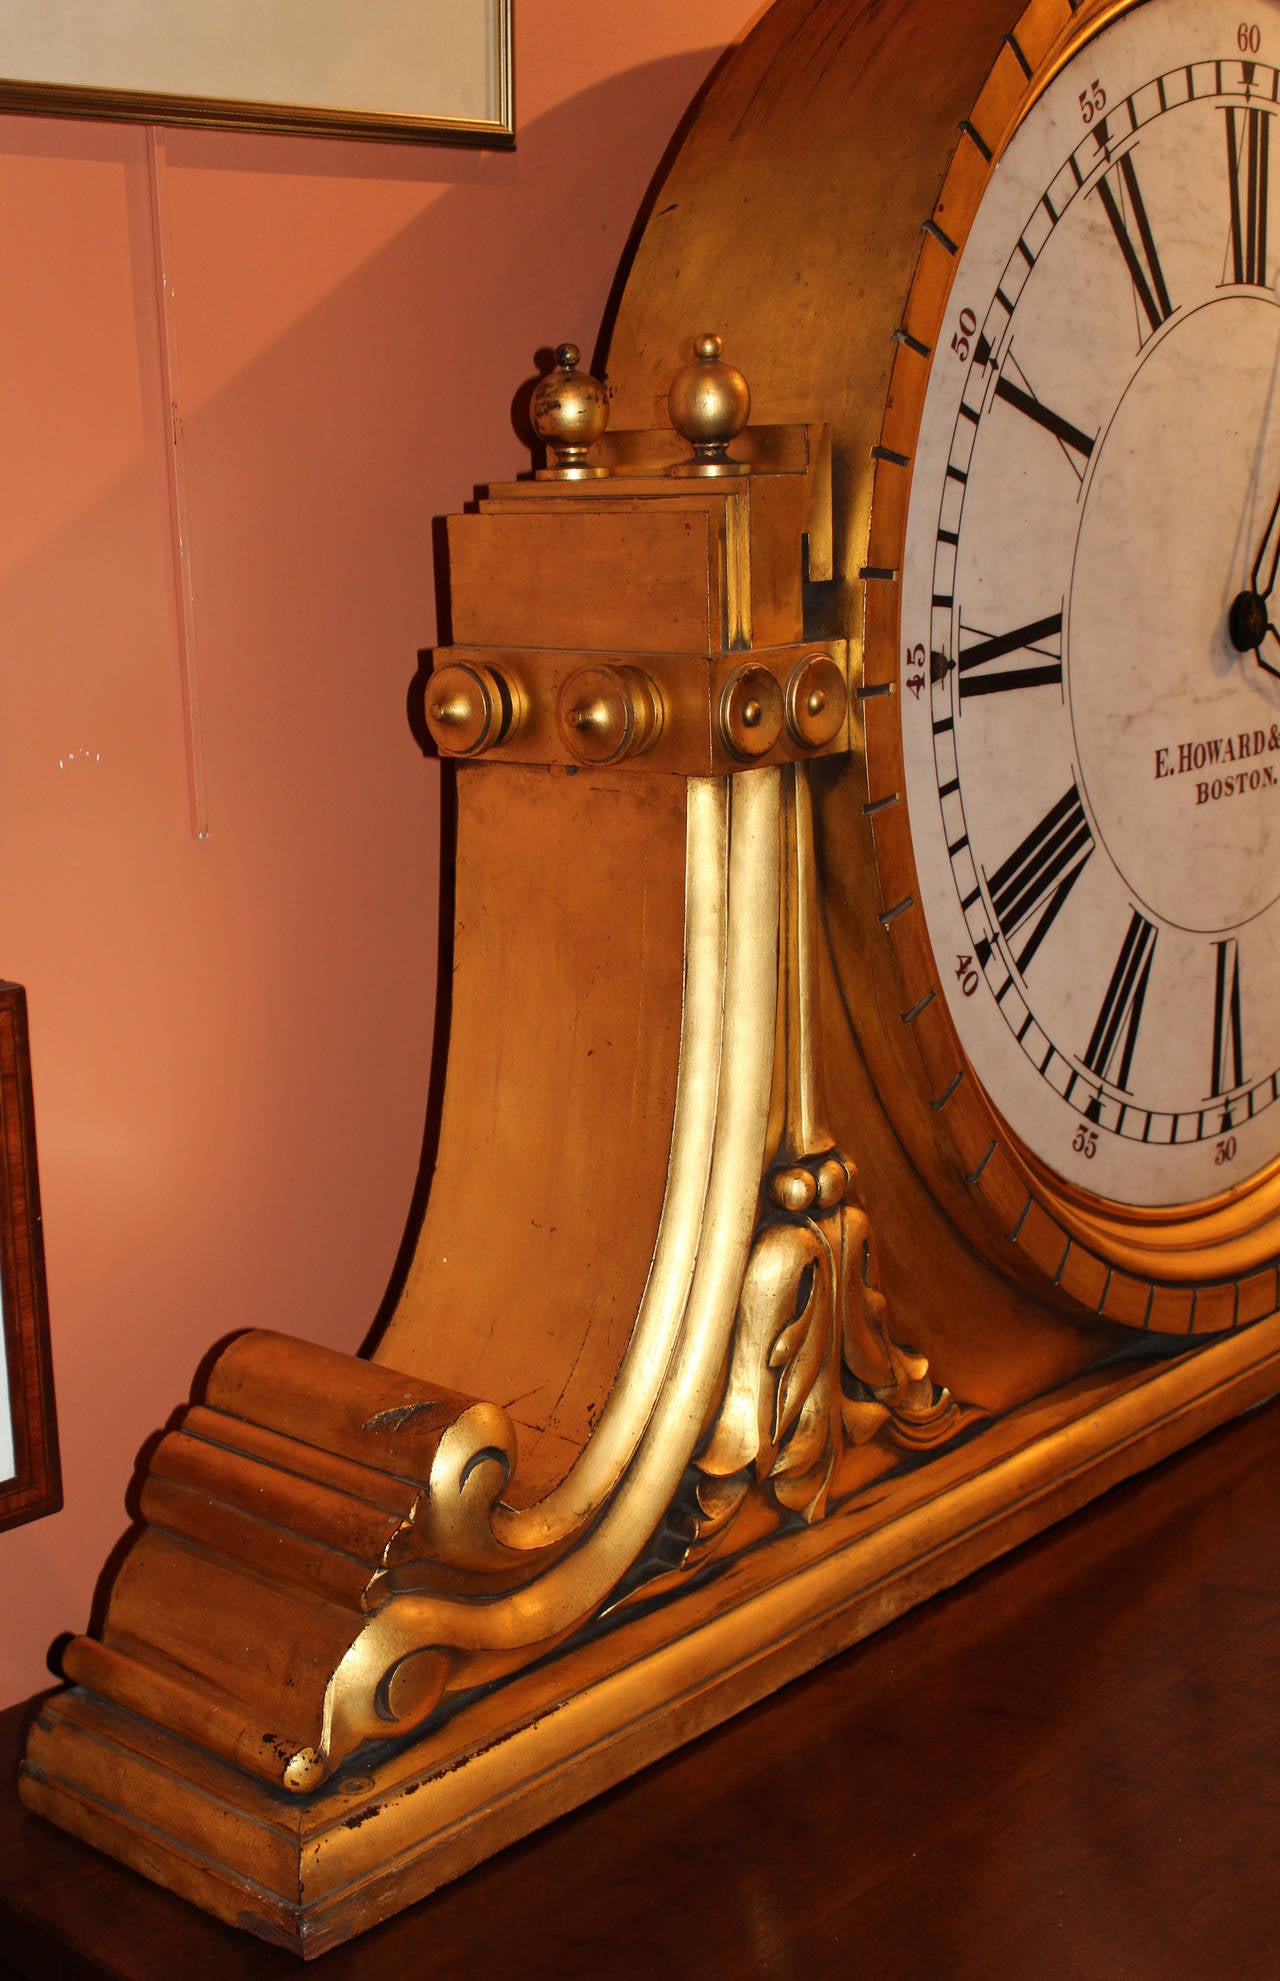 E Howard And Co No 29 Gilded Gallery Clock From Savings